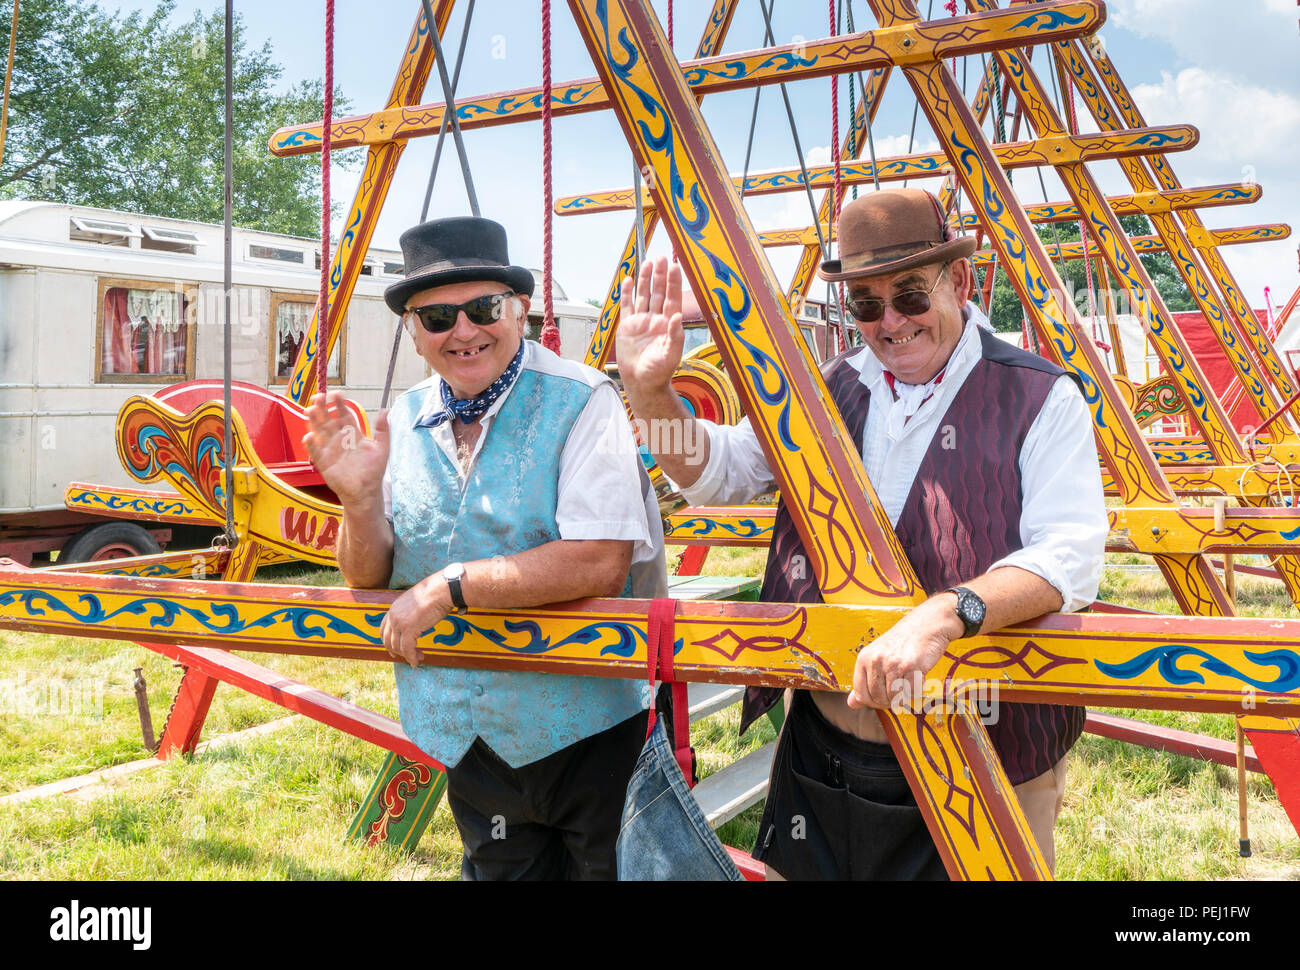 Two workers from the Harris Traditional Vintage Fair wave a greeting from the swing boat ride: they wear vintage waistcoats and bowler hats. - Stock Image